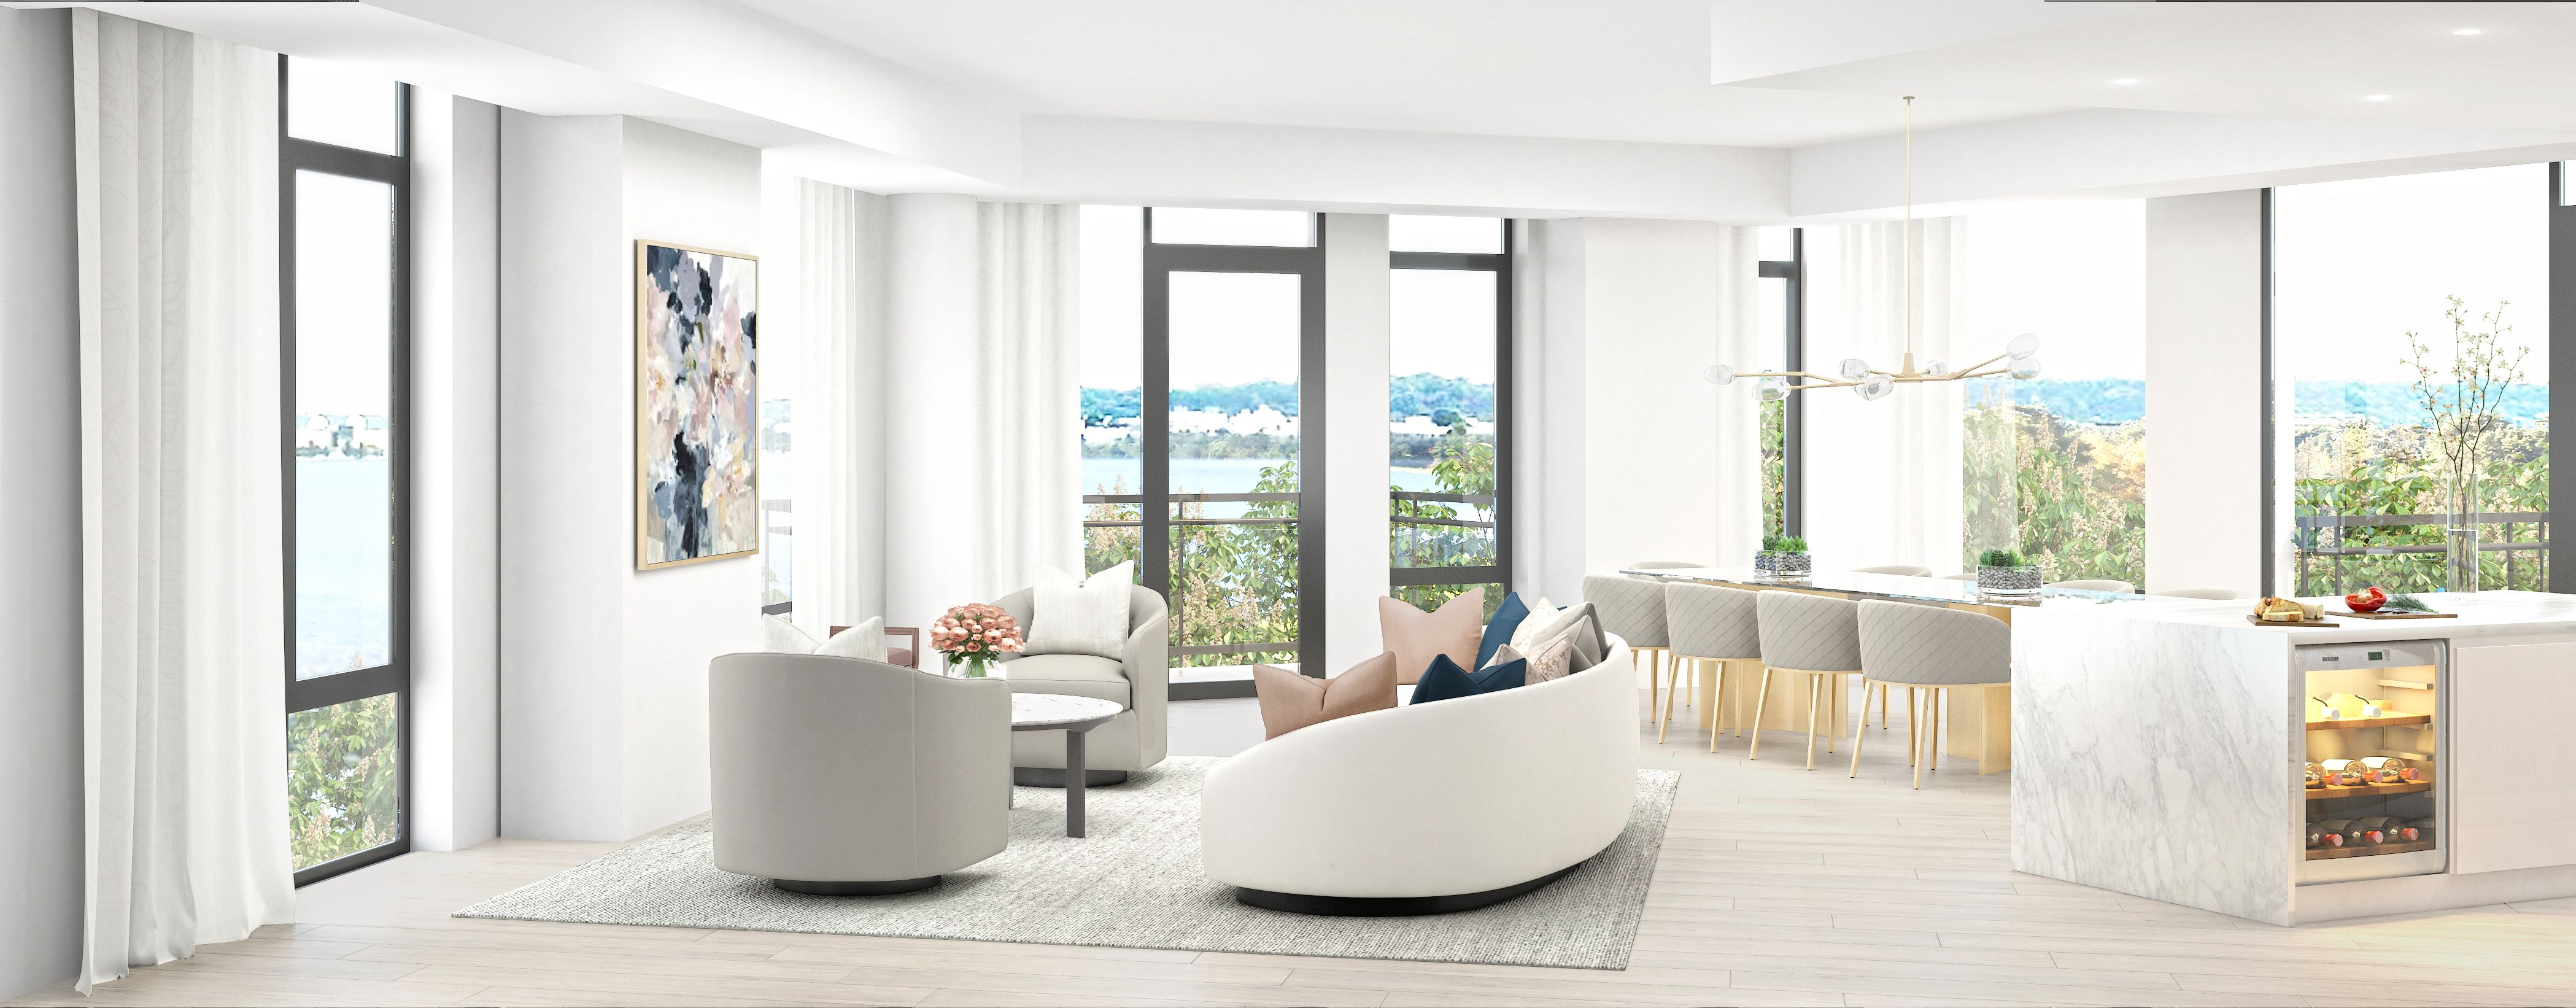 Living Area featured in the Residence D4 By MUSE in Washington, VA